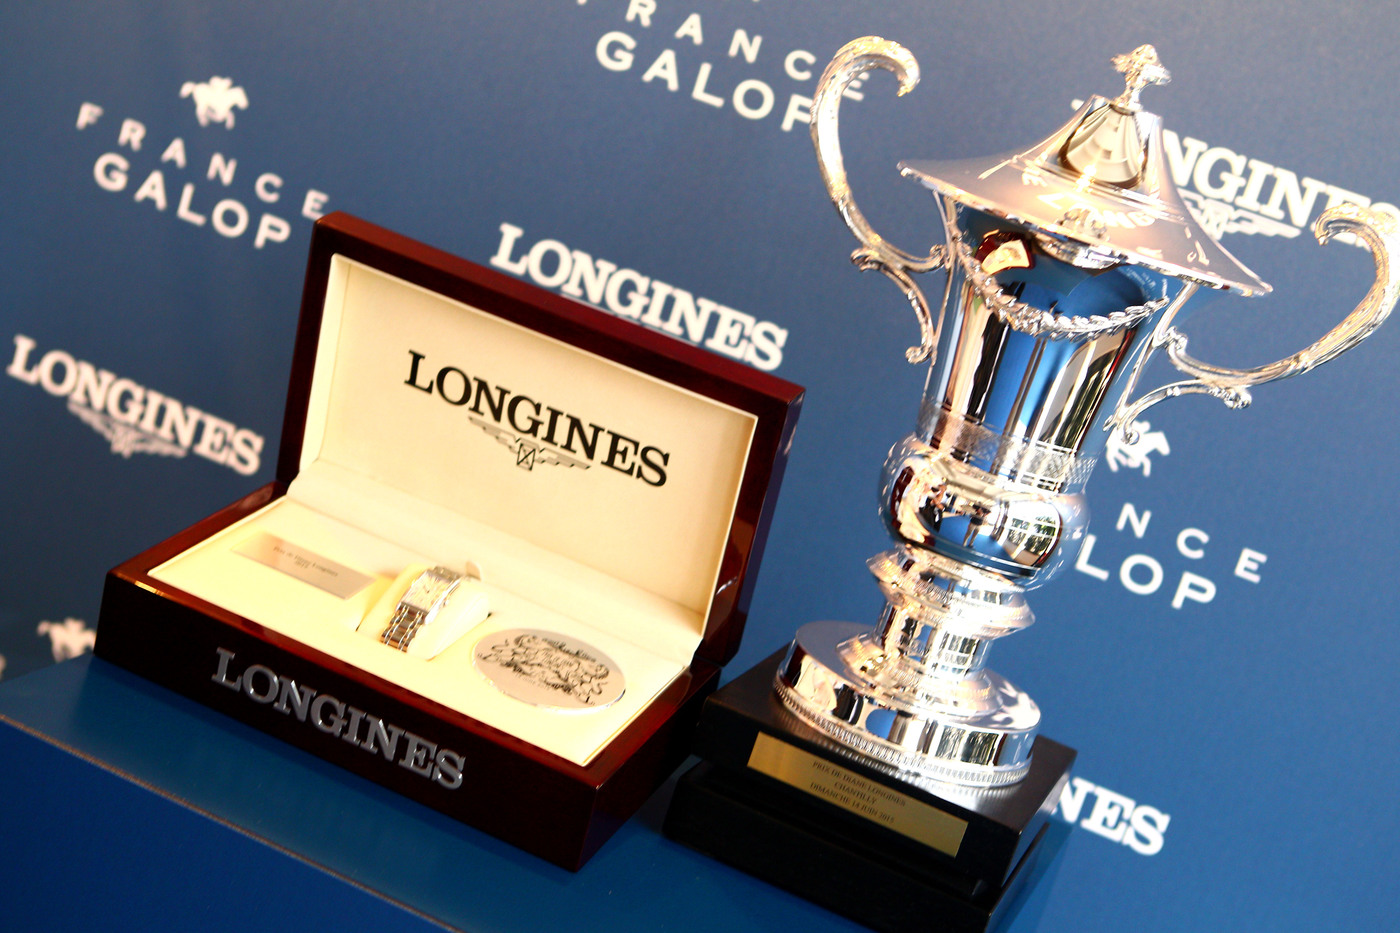 Longines Flat Racing Event: The Prix de Diane Longines 2015: Races, Elegance and Wonders in Chantilly 1